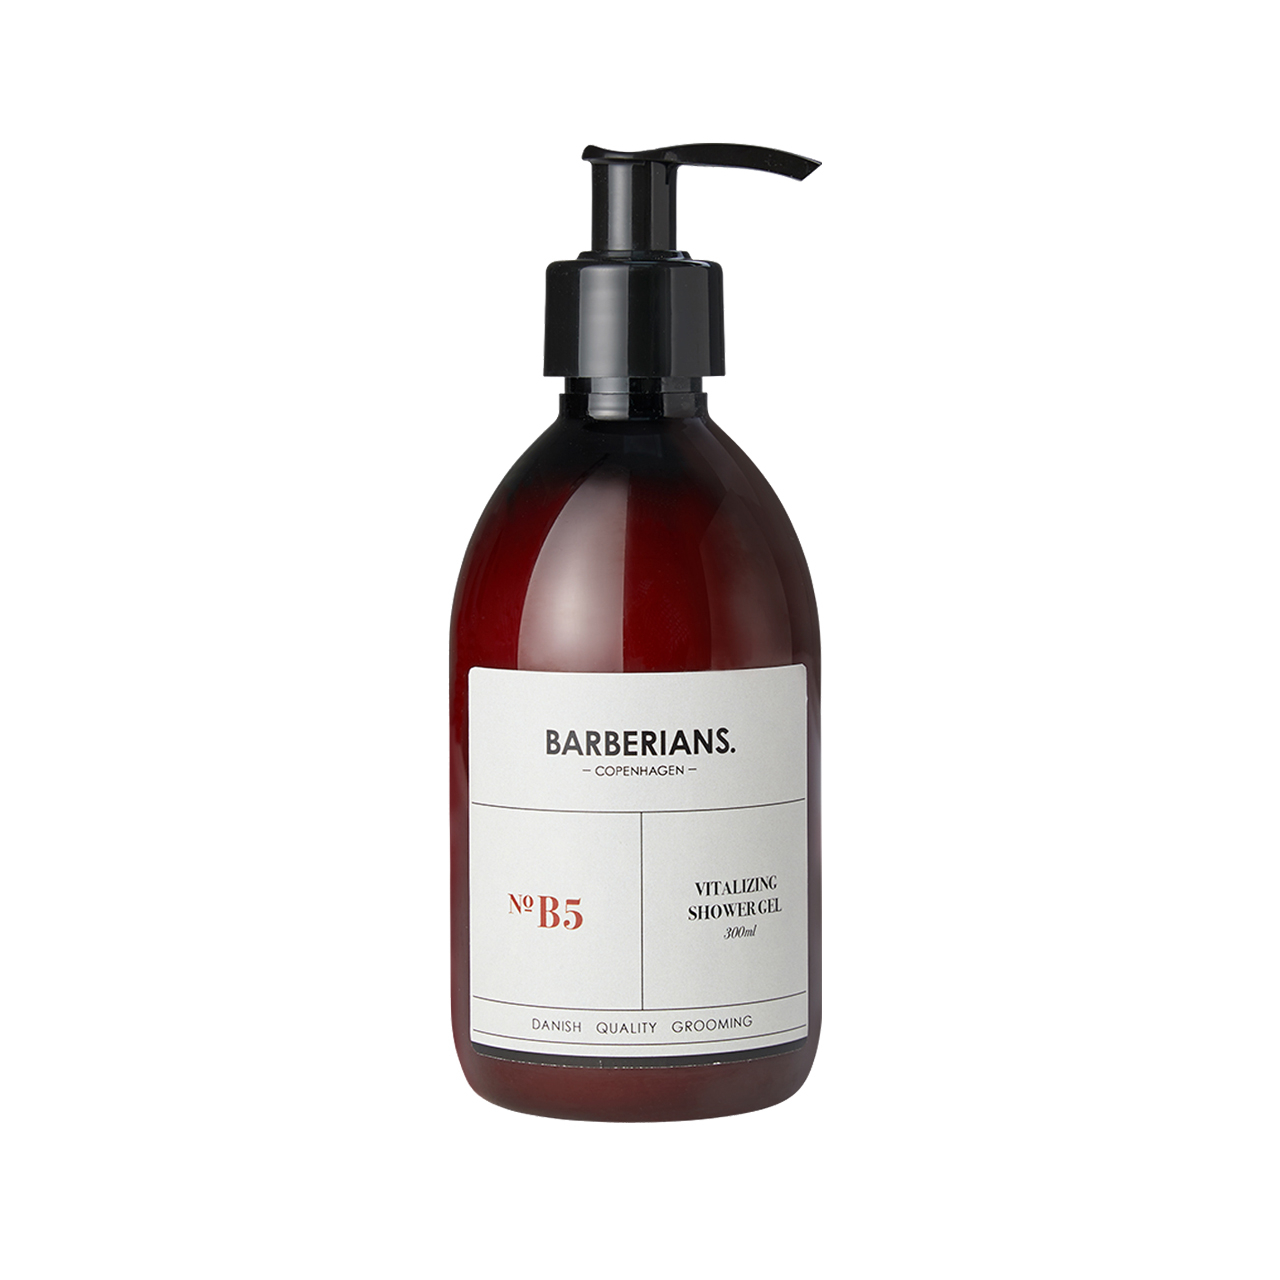 Vitalizing Shower Gel